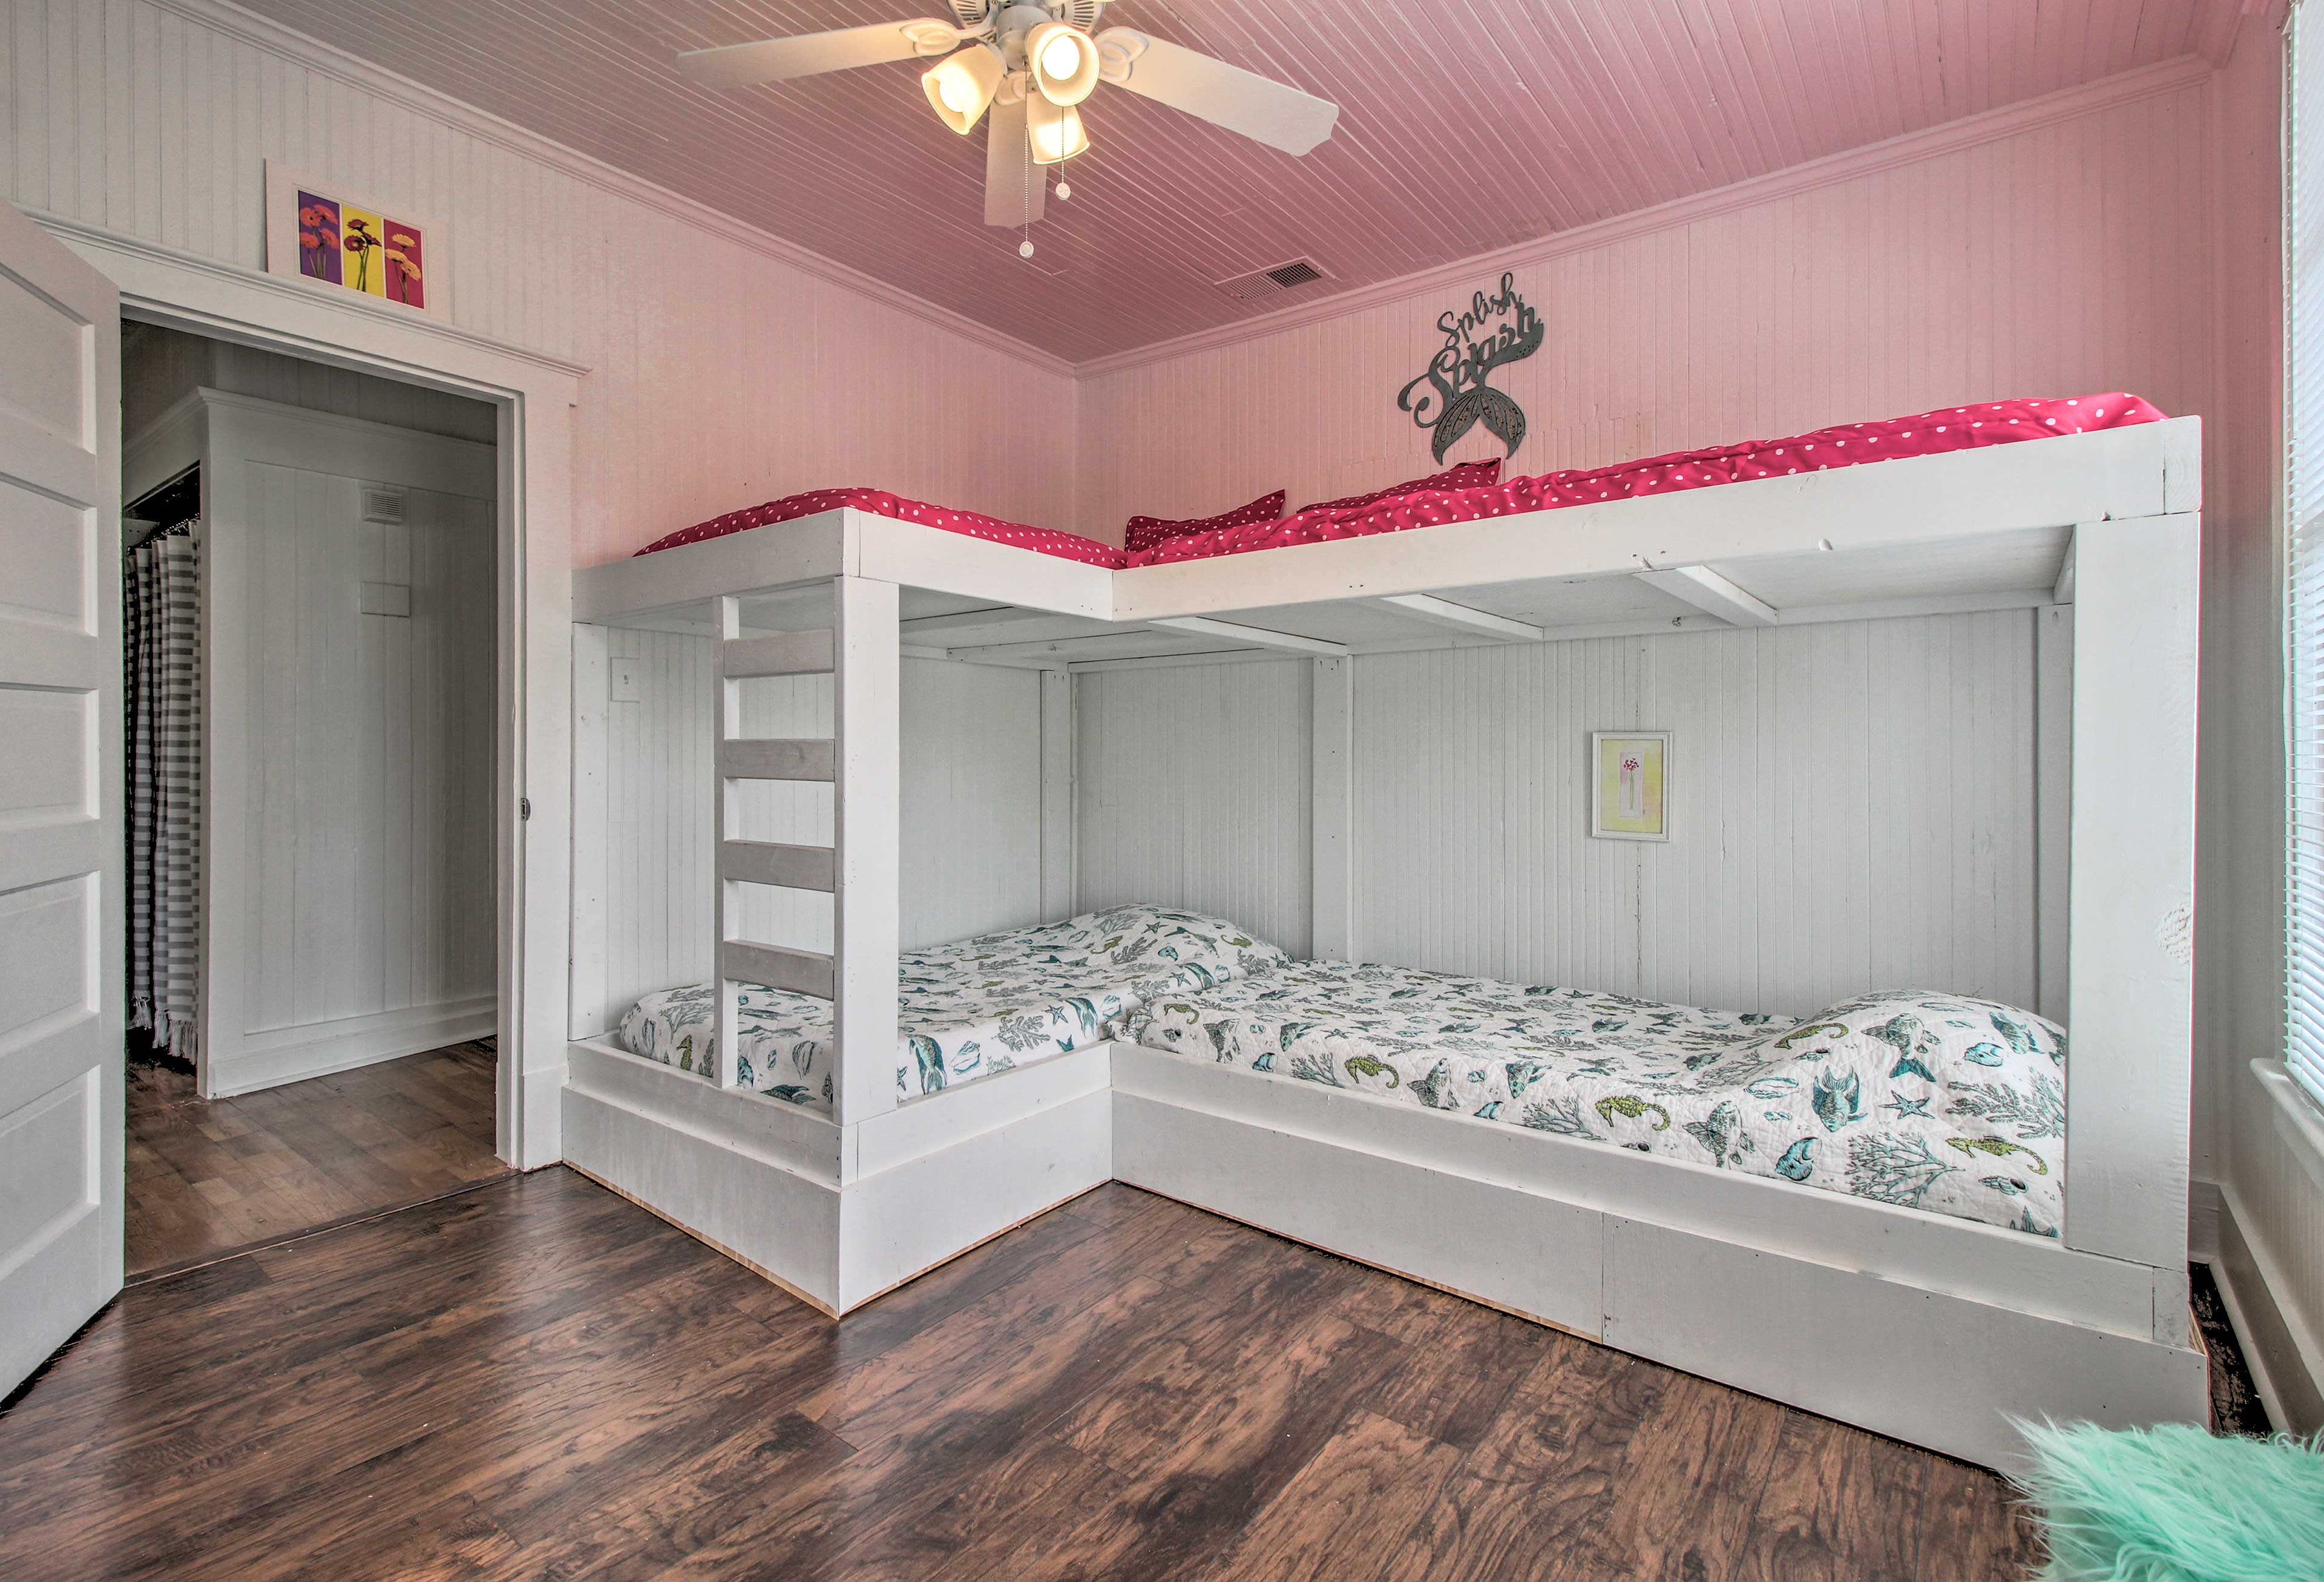 The third bedroom has 2 twin-over-twin bunk beds.